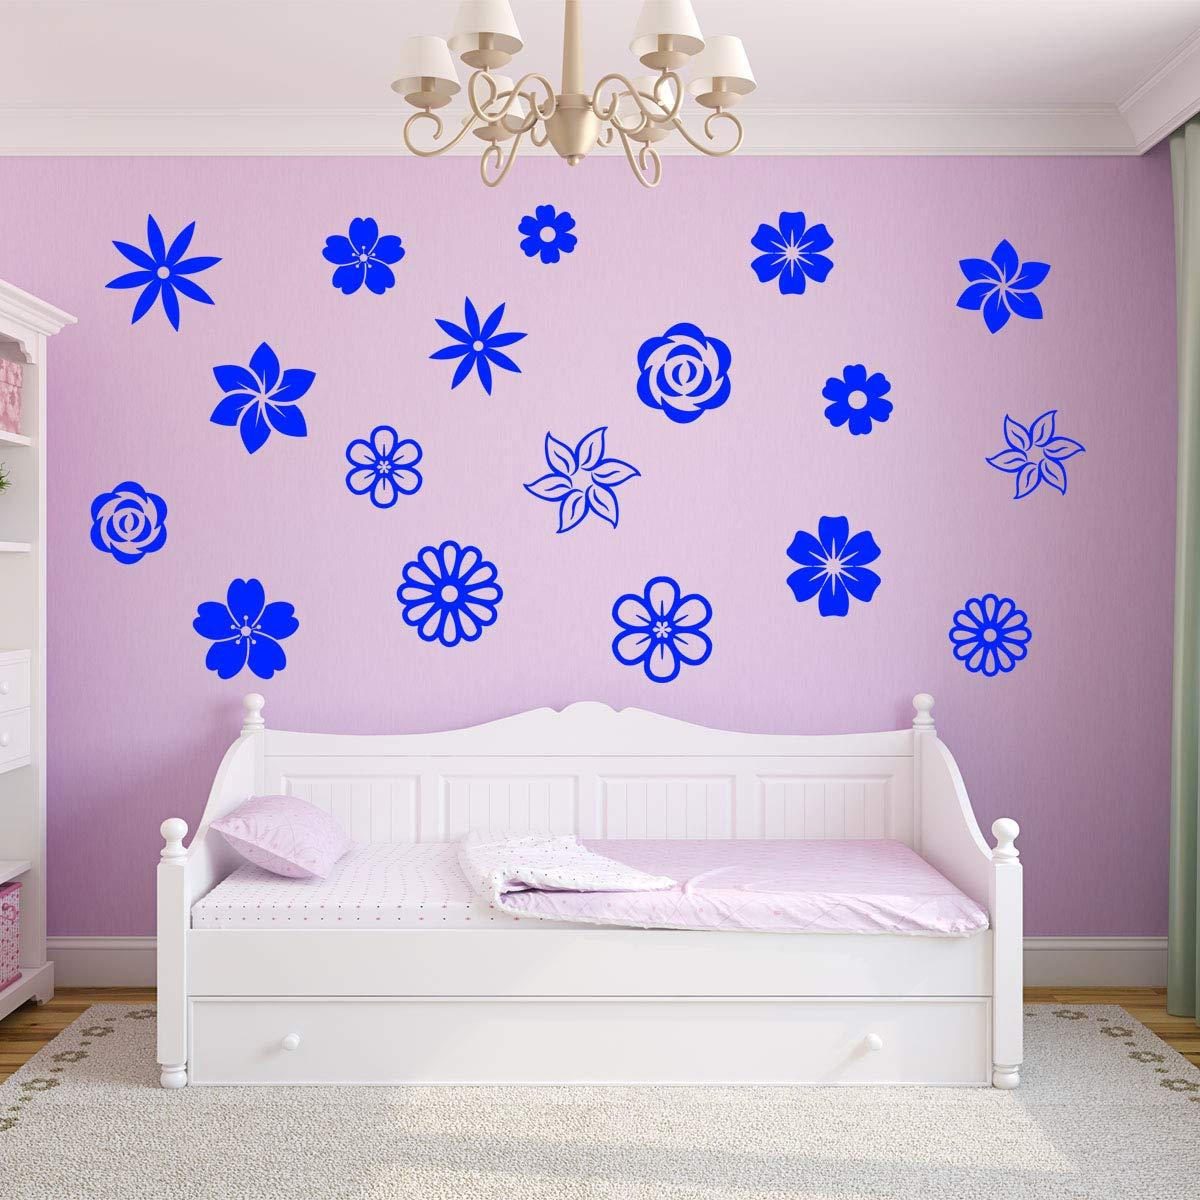 VWAQ Flower Decals for Wall Nursery - Wall Stickers Decor - VWAQ Vinyl Wall Art Quotes and Prints